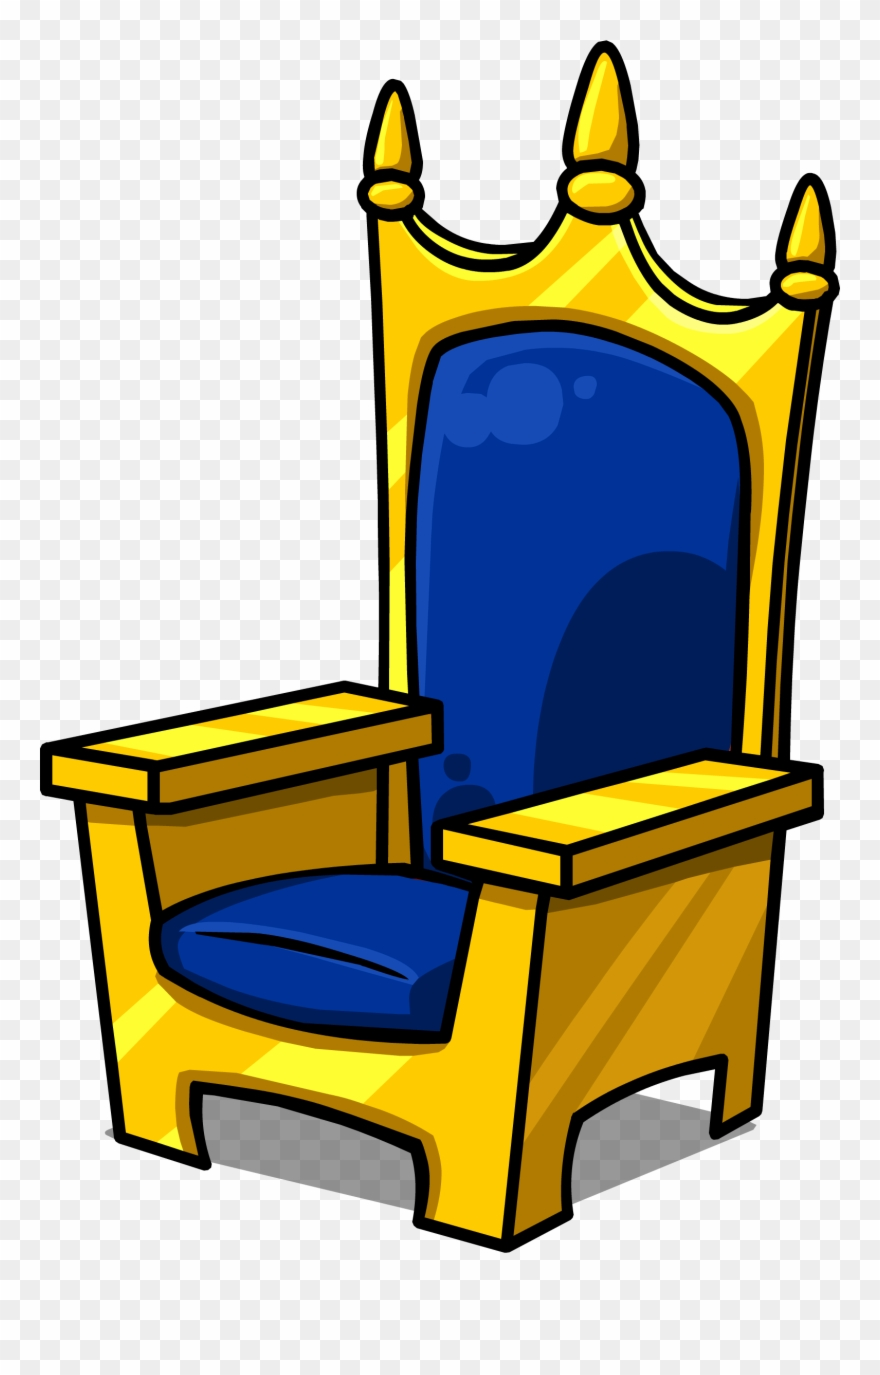 svg transparent library Throne clipart. Clip art png download